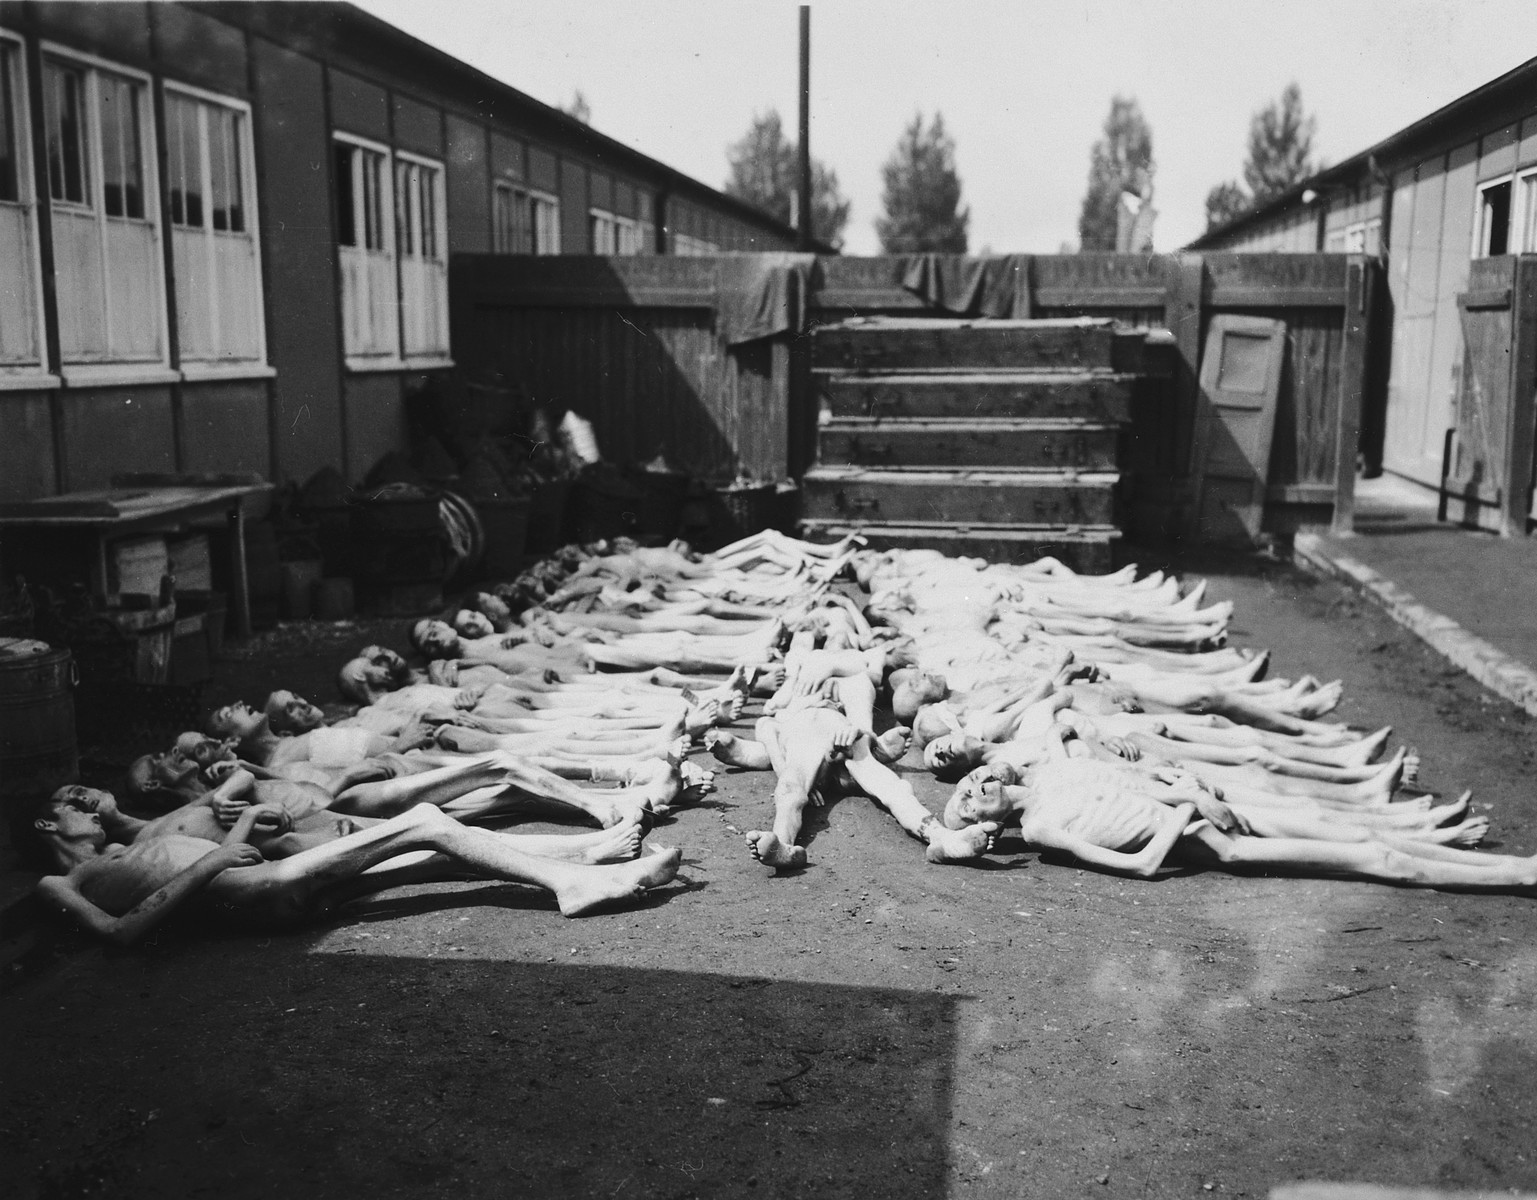 Corpses are laid out in rows prior to burial outside a barracks in the Dachau concentration camp.